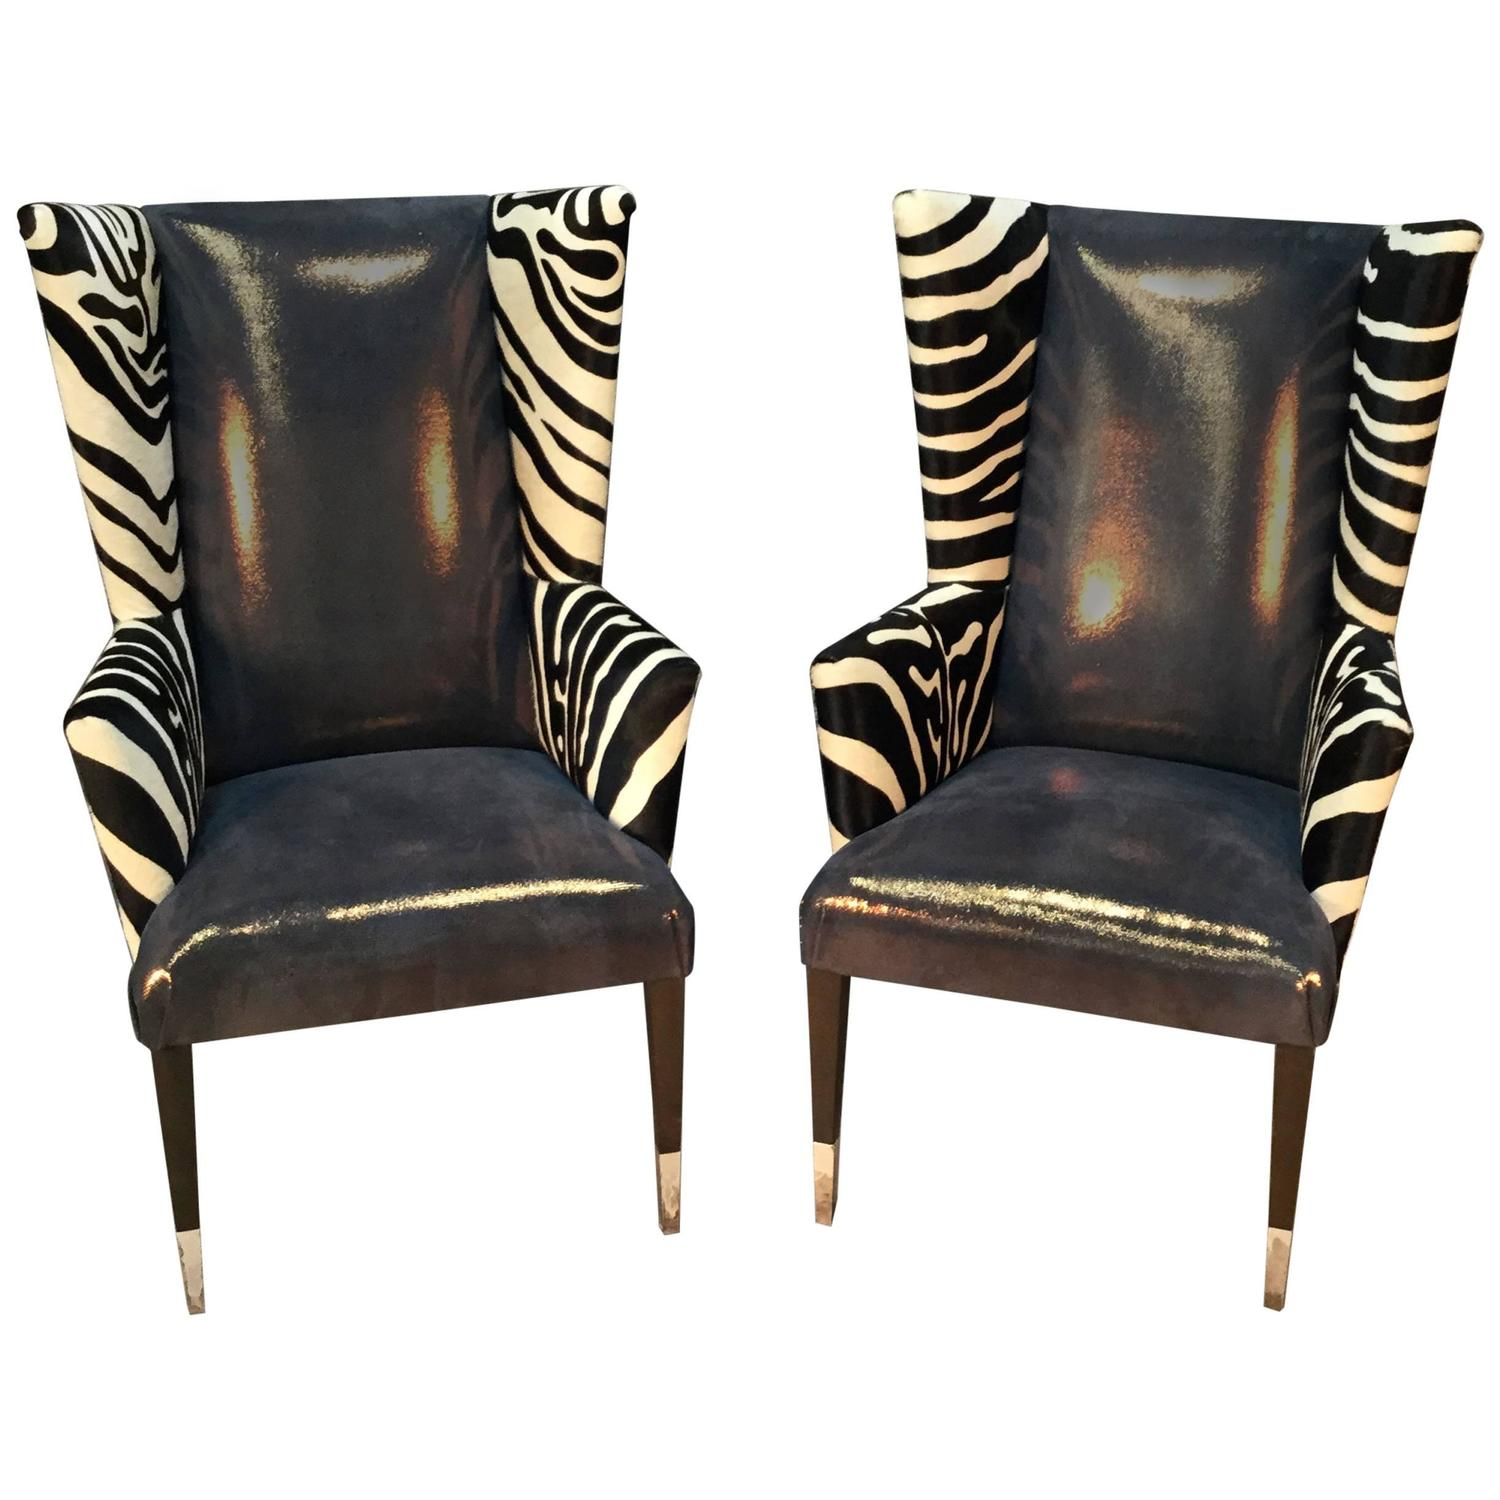 Pair Of Modern Wingback Chairs In Zebra Printed Cowhide And Faux Reen At 1stdibs